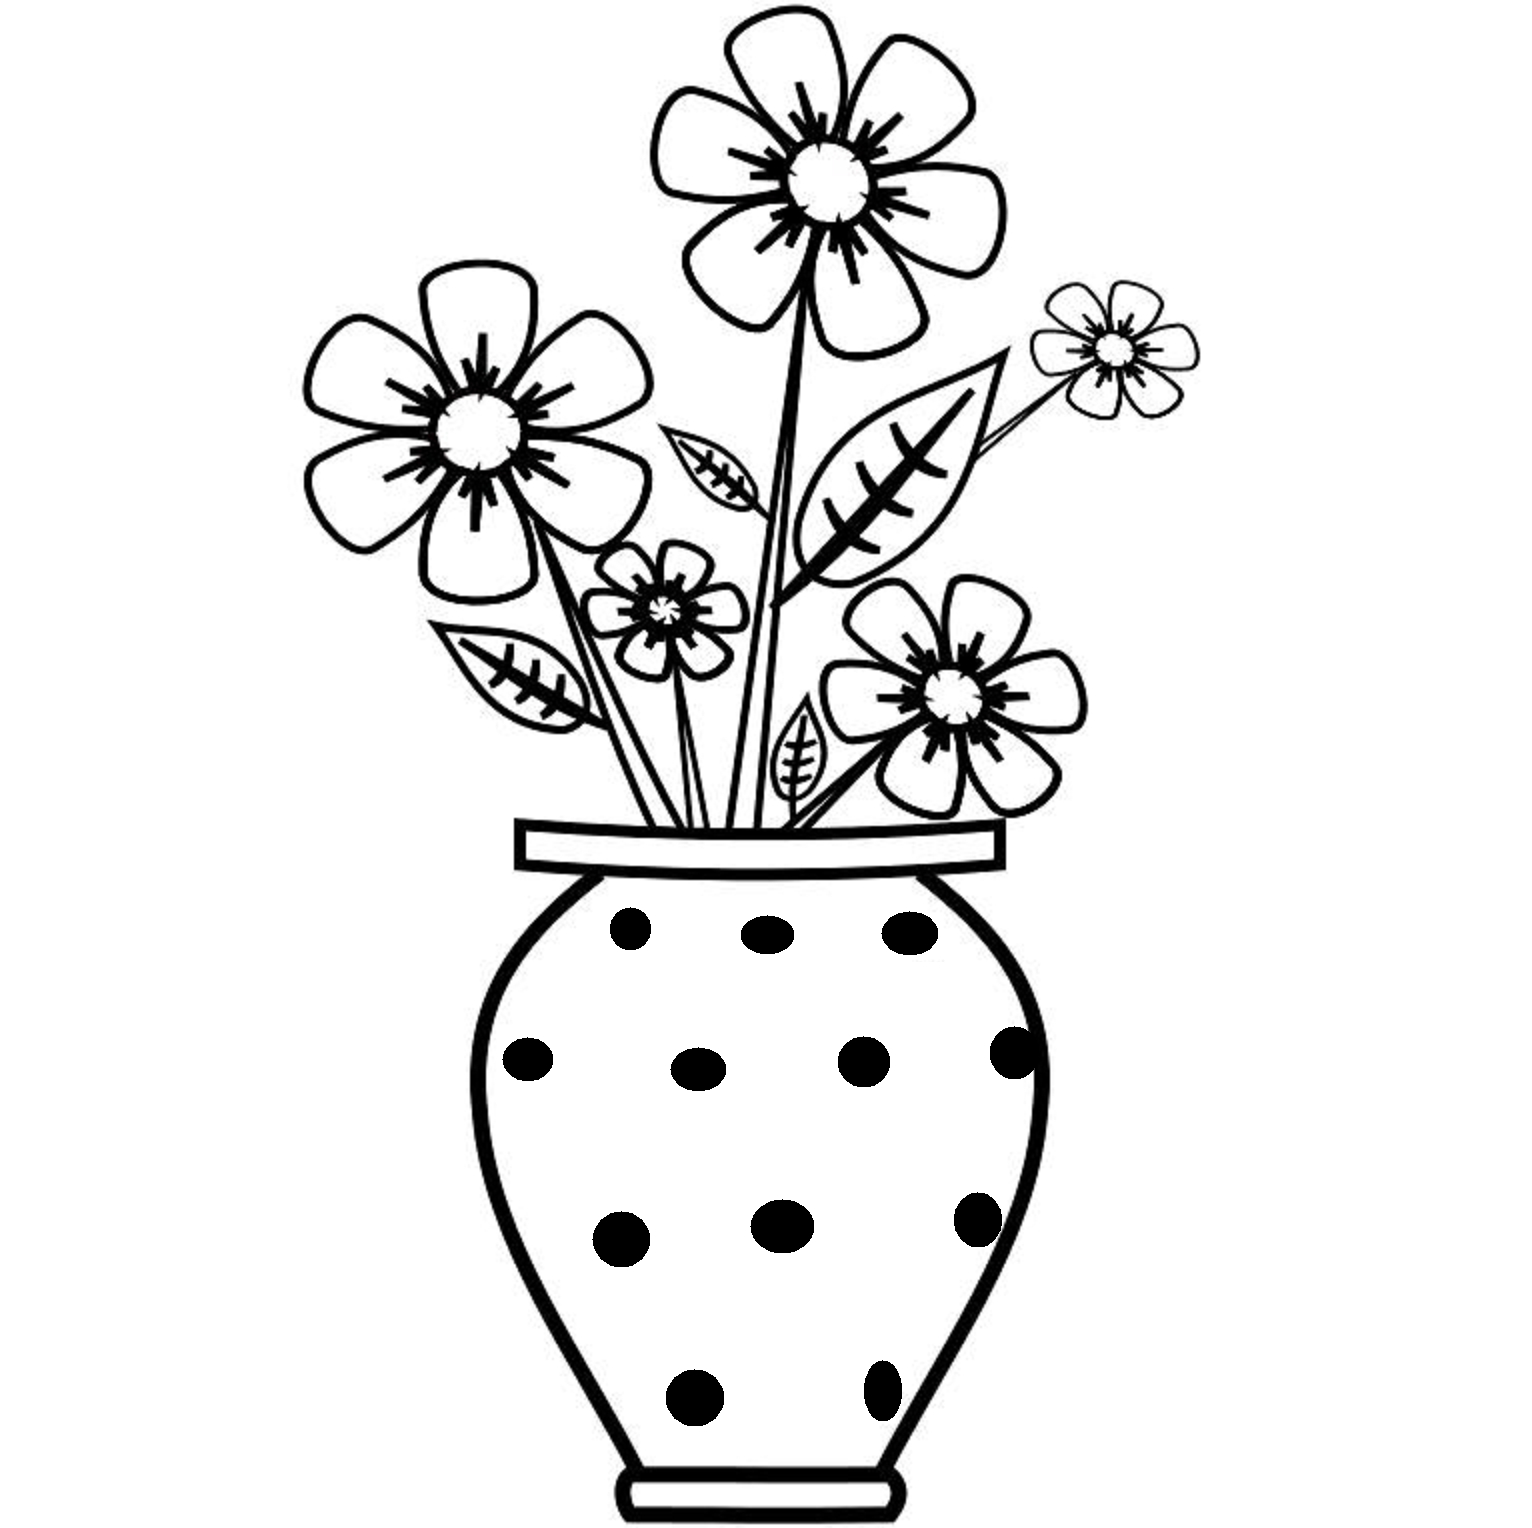 1532x1528 Coloring Pages Easy Flowers To Sketch Flower Vase In A Drawing